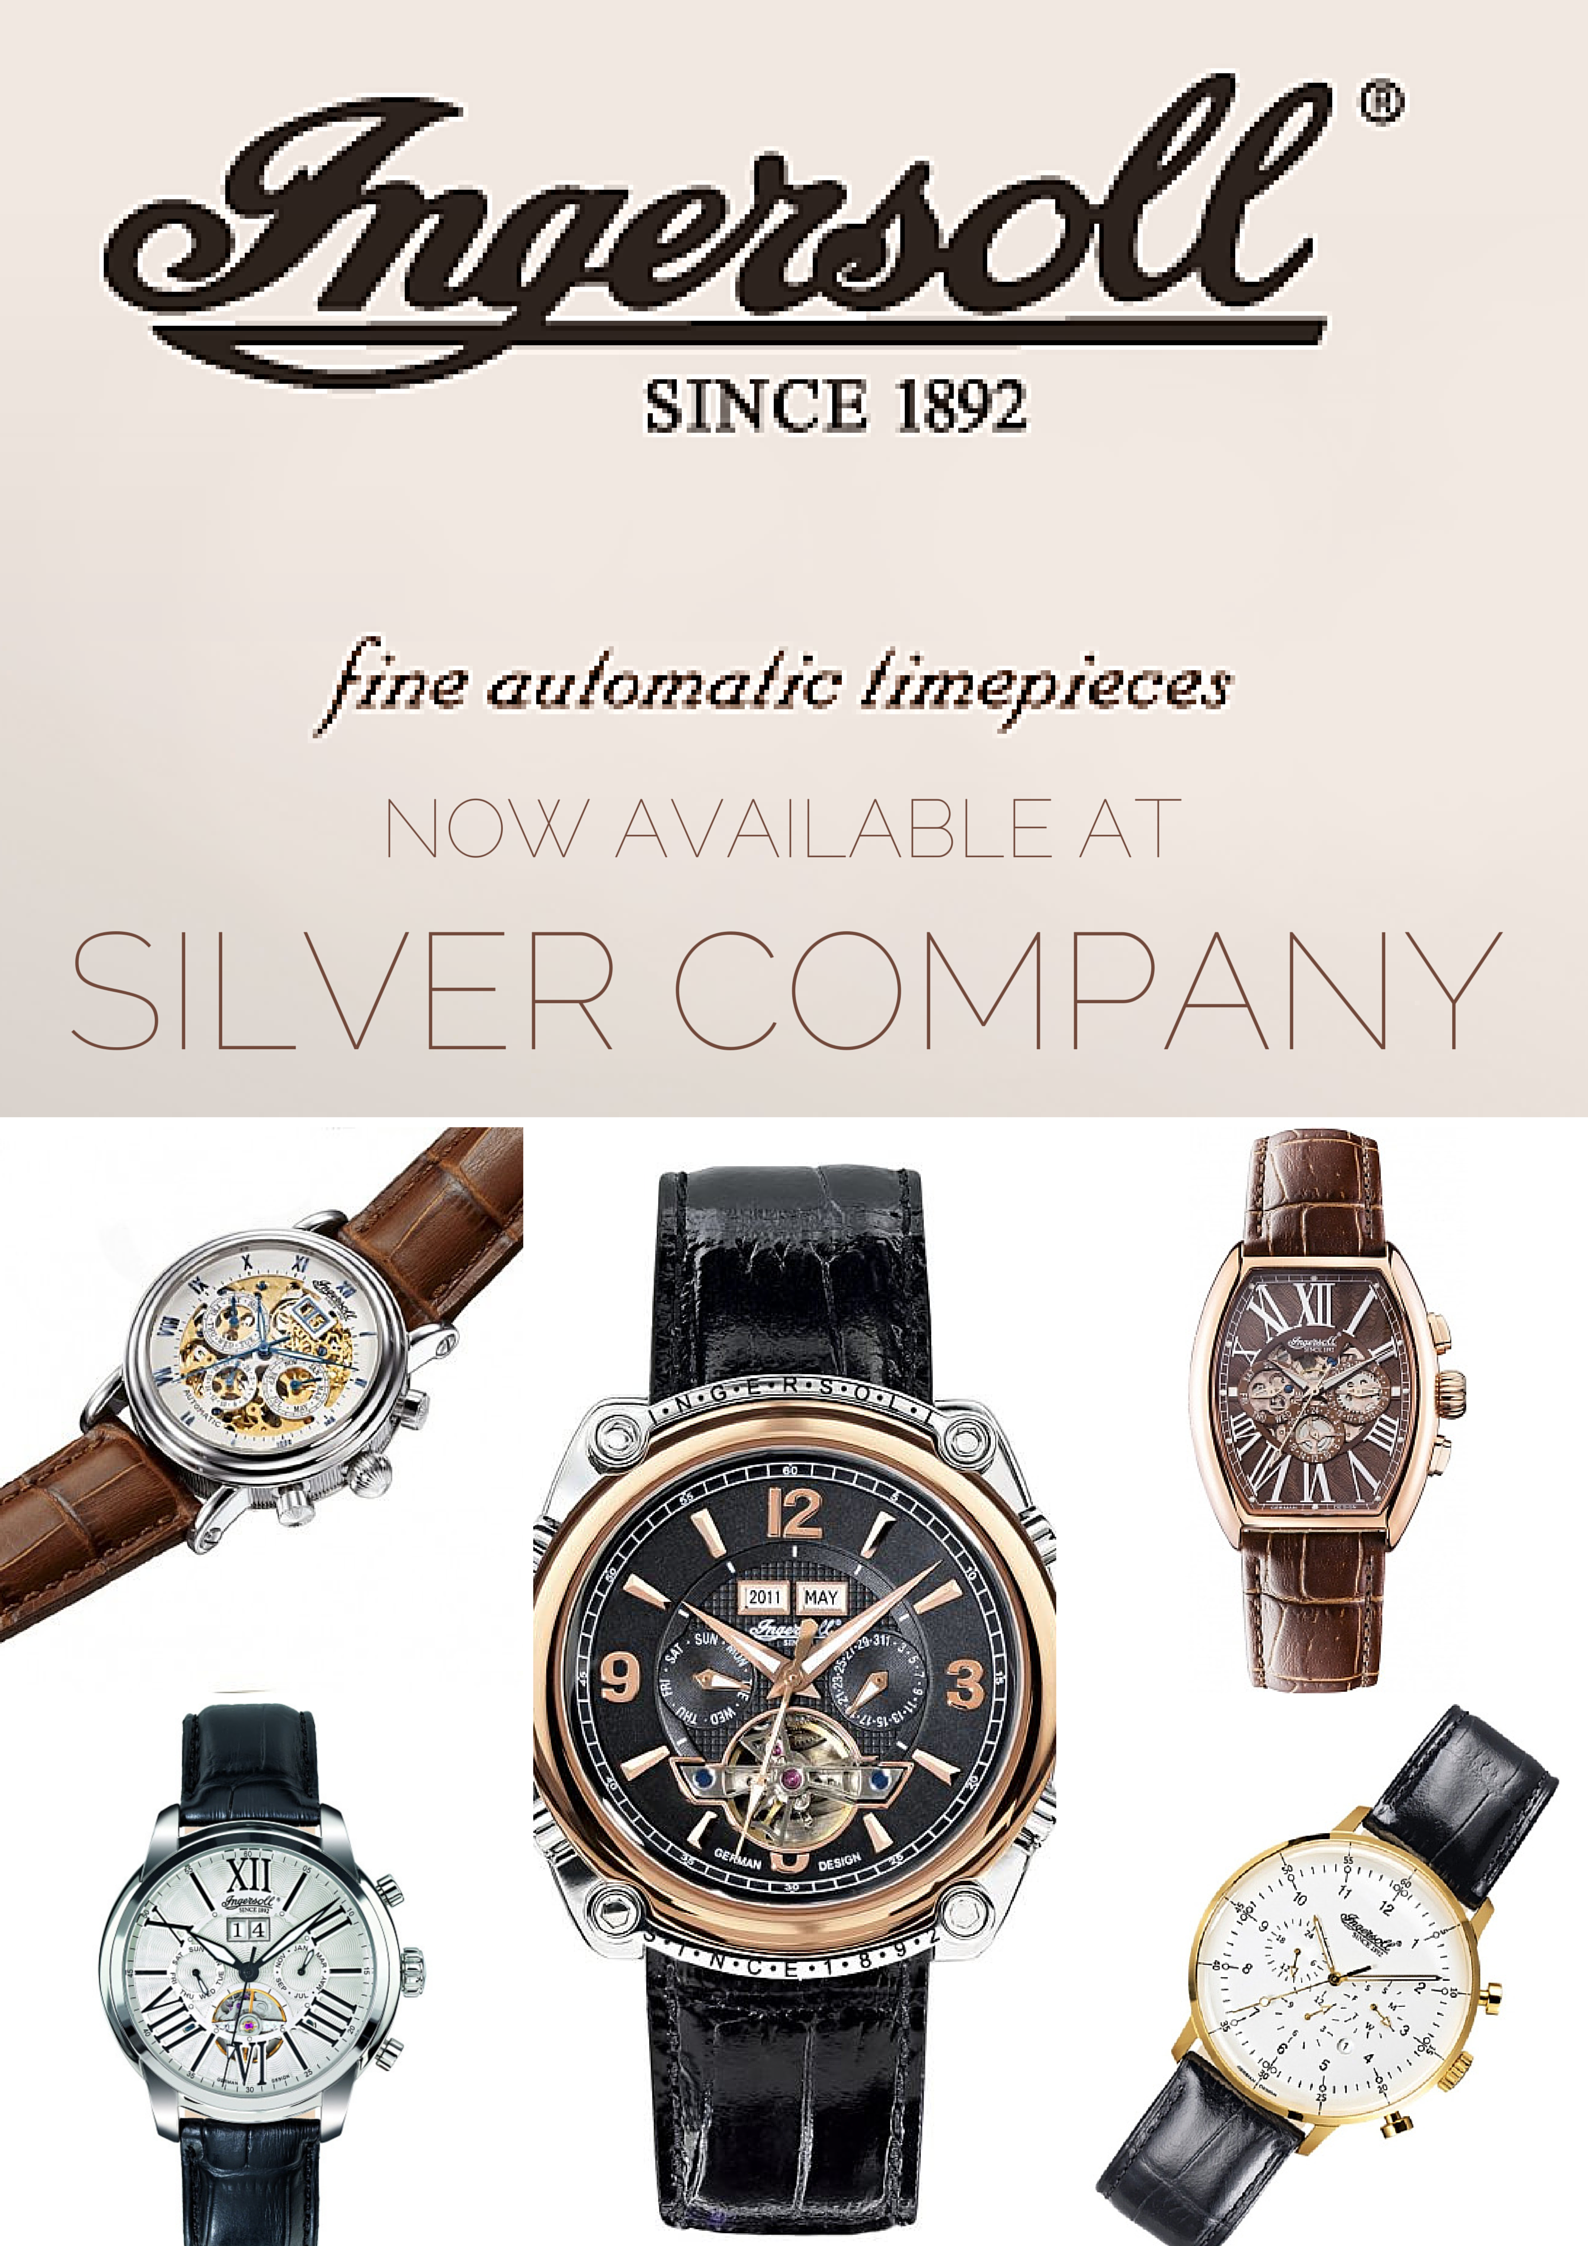 Ingersoll now available at our Rosebank store! Rich in history, eye catching design and reliable mechanics remain the hallmarks of Ingersoll watches.    Silver Company Eastgate Mall, Centurion Mall and Rosebank Mall. info@silvercompany.co.za